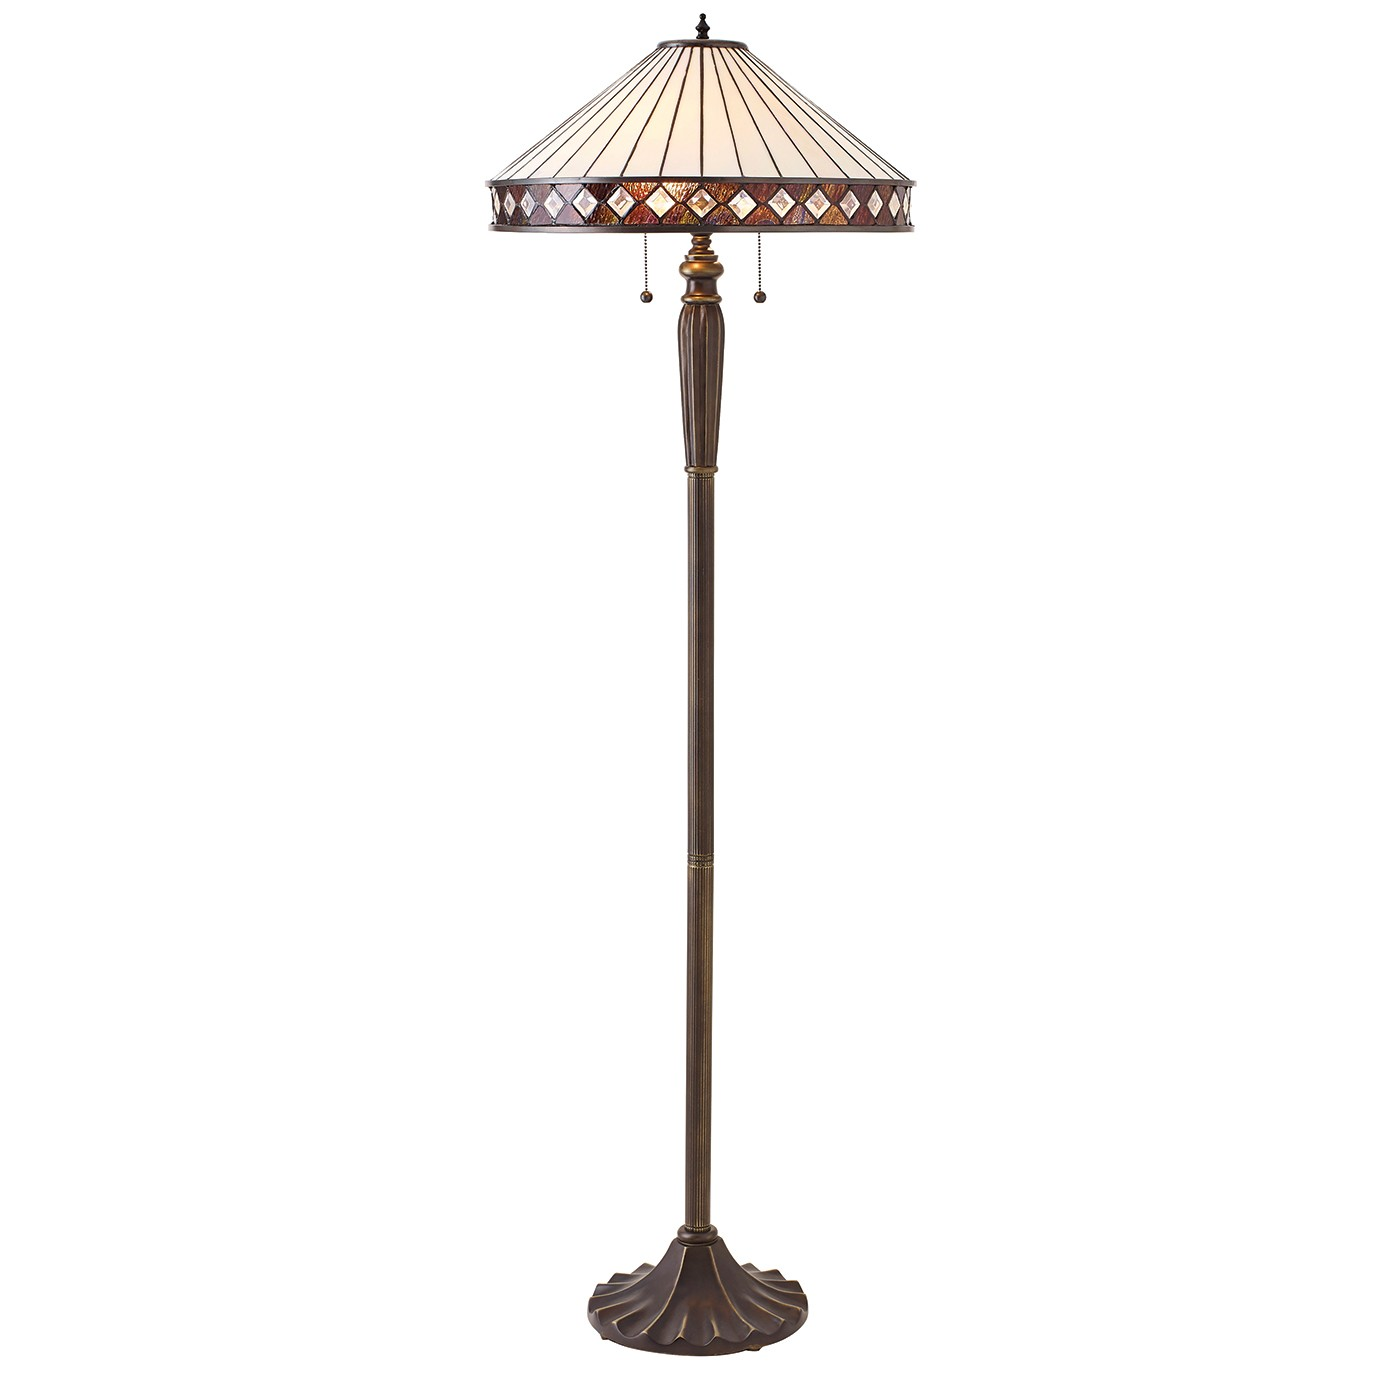 fargo 70936 tiffany down 2 light floor lamp lighting bug With tiffany fargo floor lamp